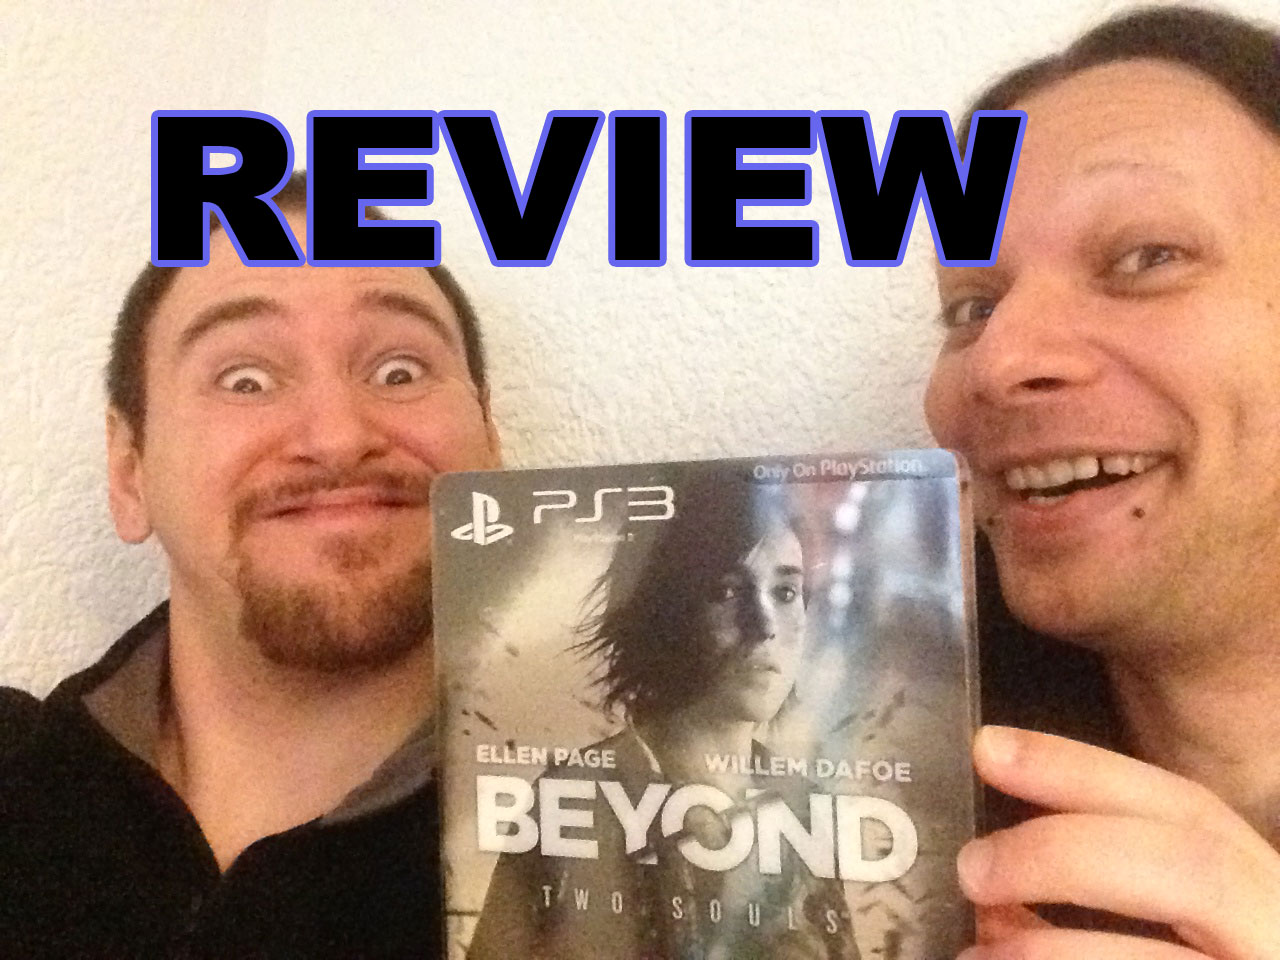 beyond_review